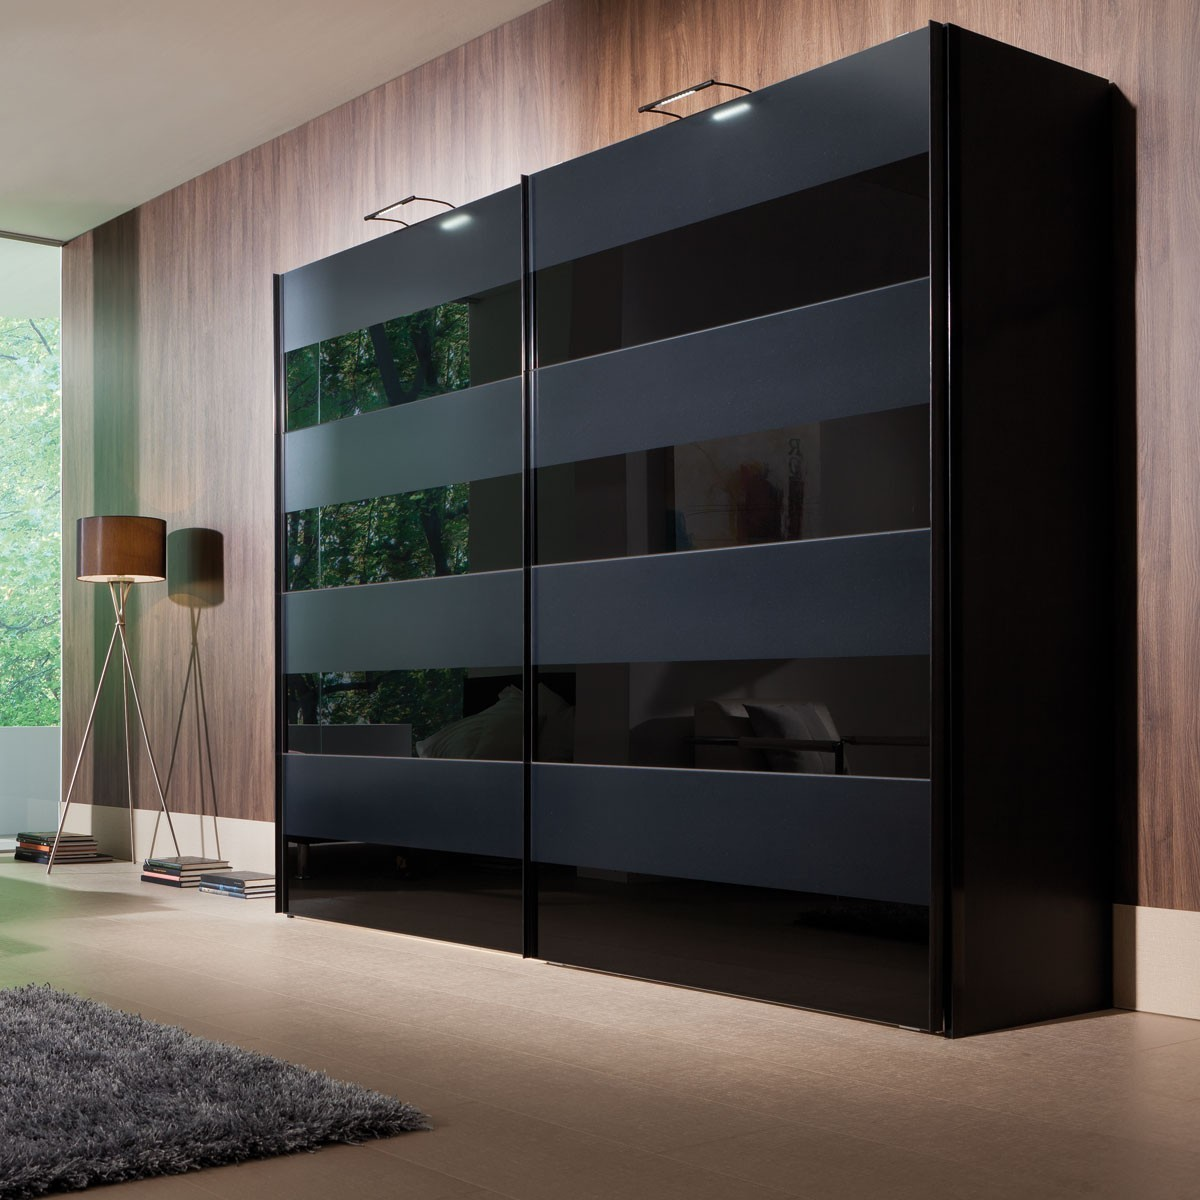 kleiderschrank schwarz. Black Bedroom Furniture Sets. Home Design Ideas